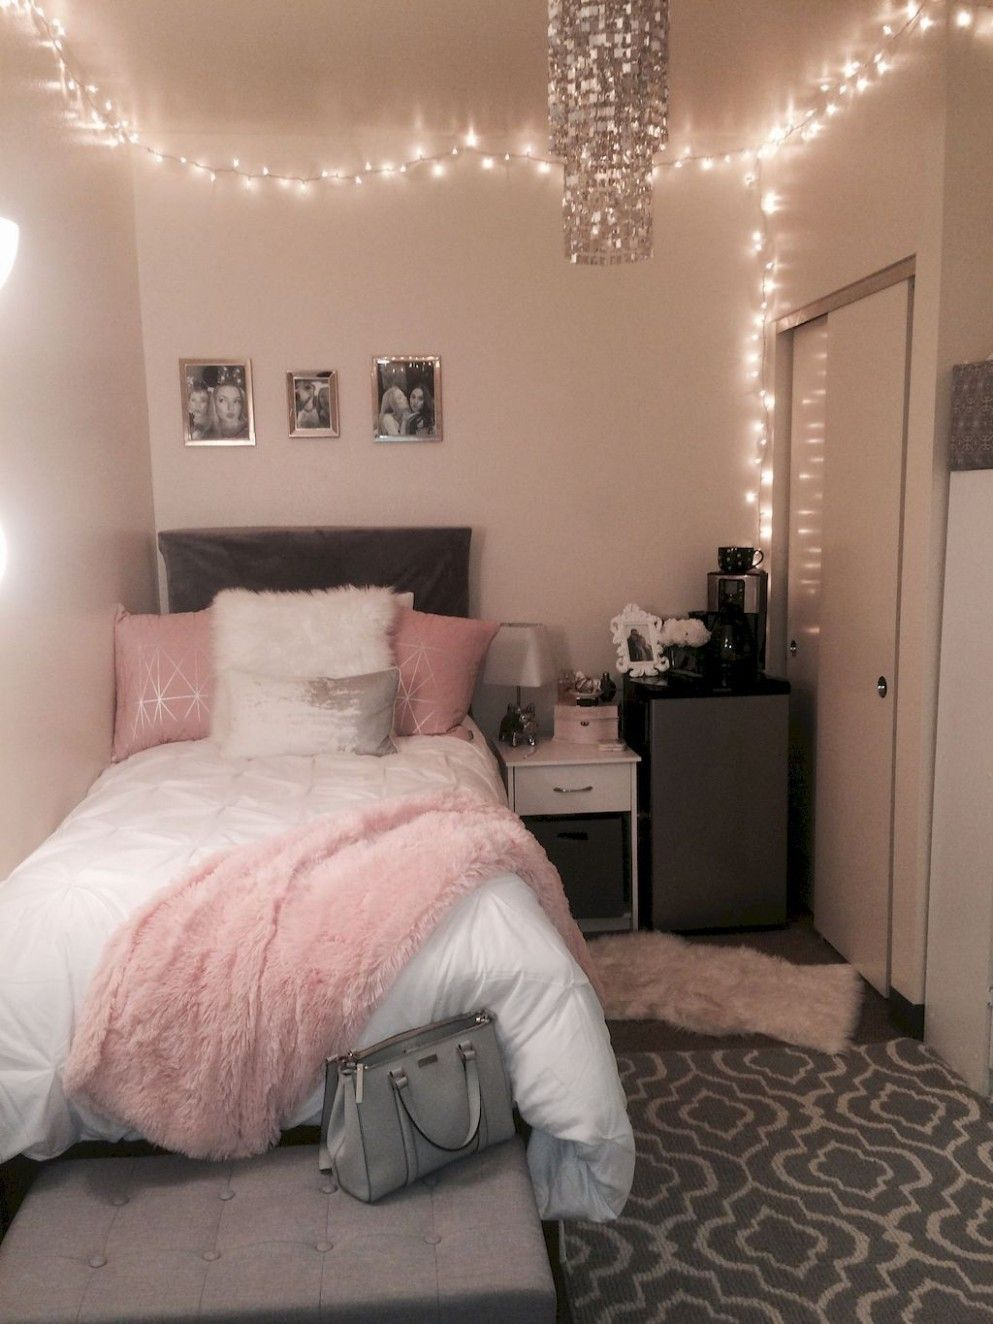 Small Bedroom Decorating Ideas Diy In 2020 College Bedroom Decor Dorm Room Inspiration Dorm Room Decor